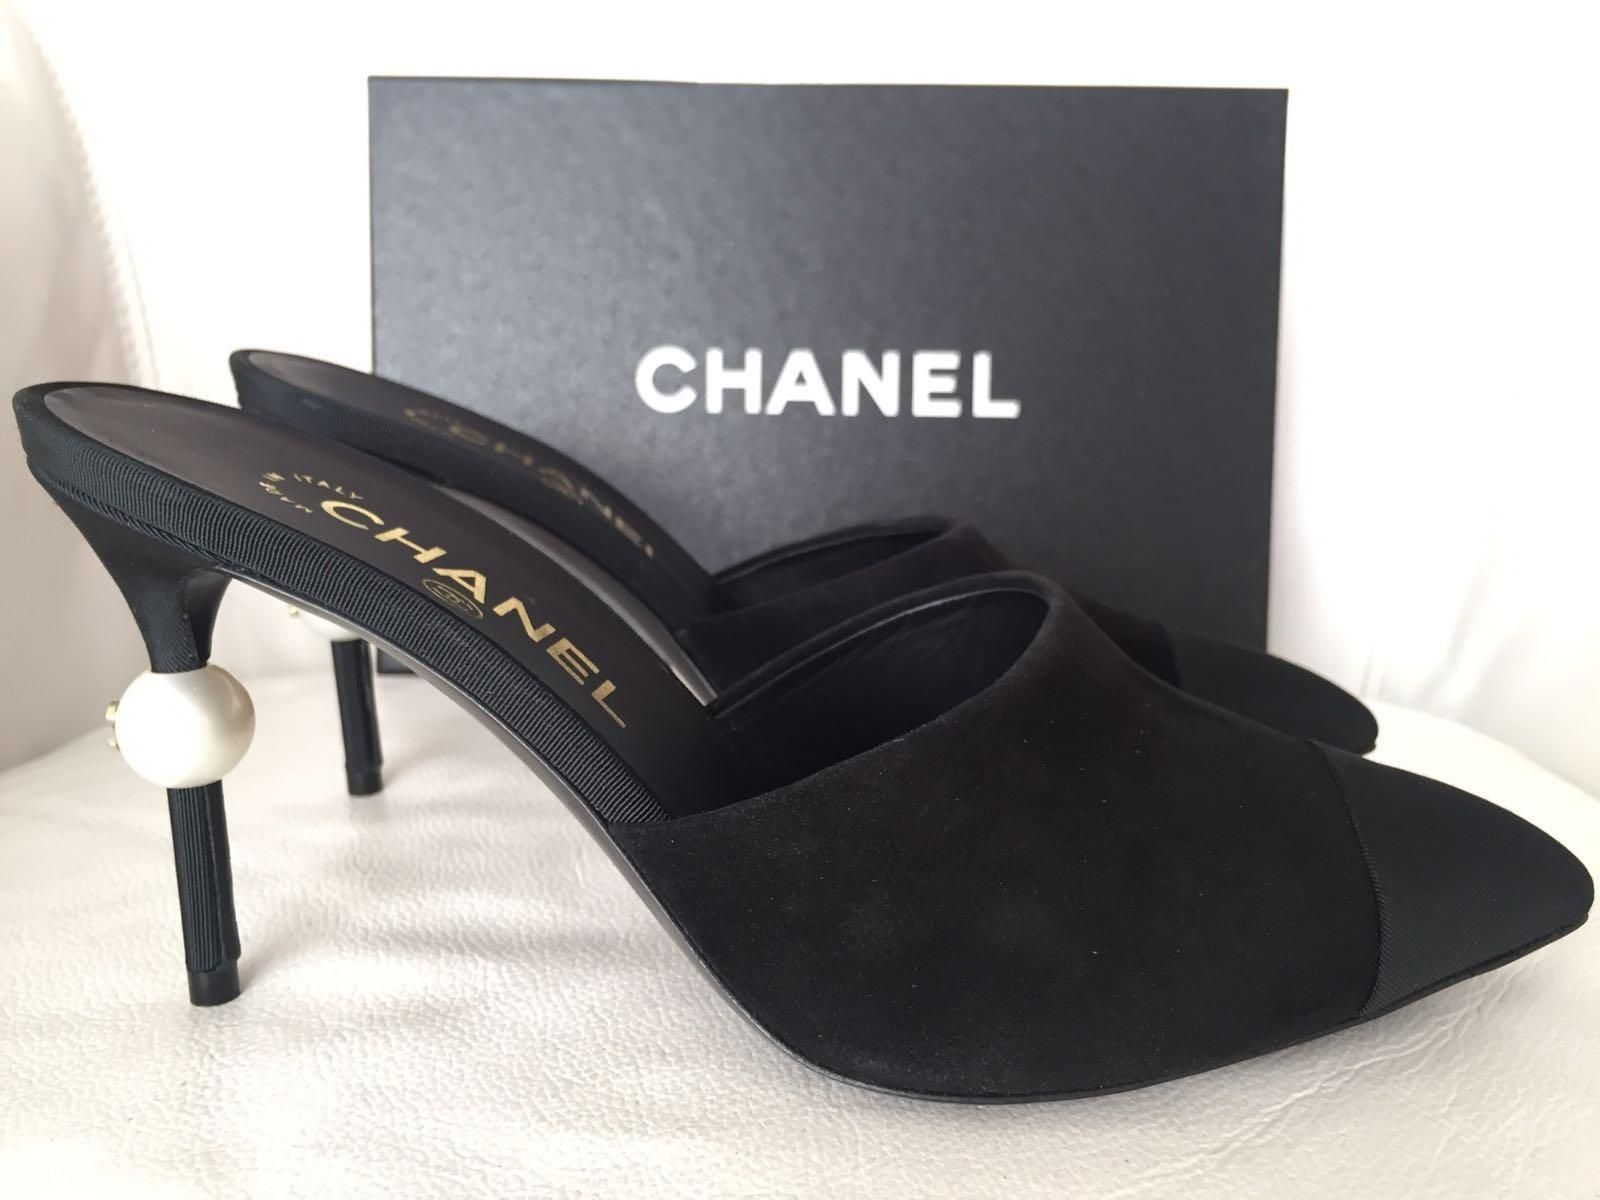 bec3fbf8bbf Chanel Runway Suede Heels Pearl Pumps 38 Nib Black Mules. Get the must-have  mules of this season! These Chanel Runway Suede Heels…